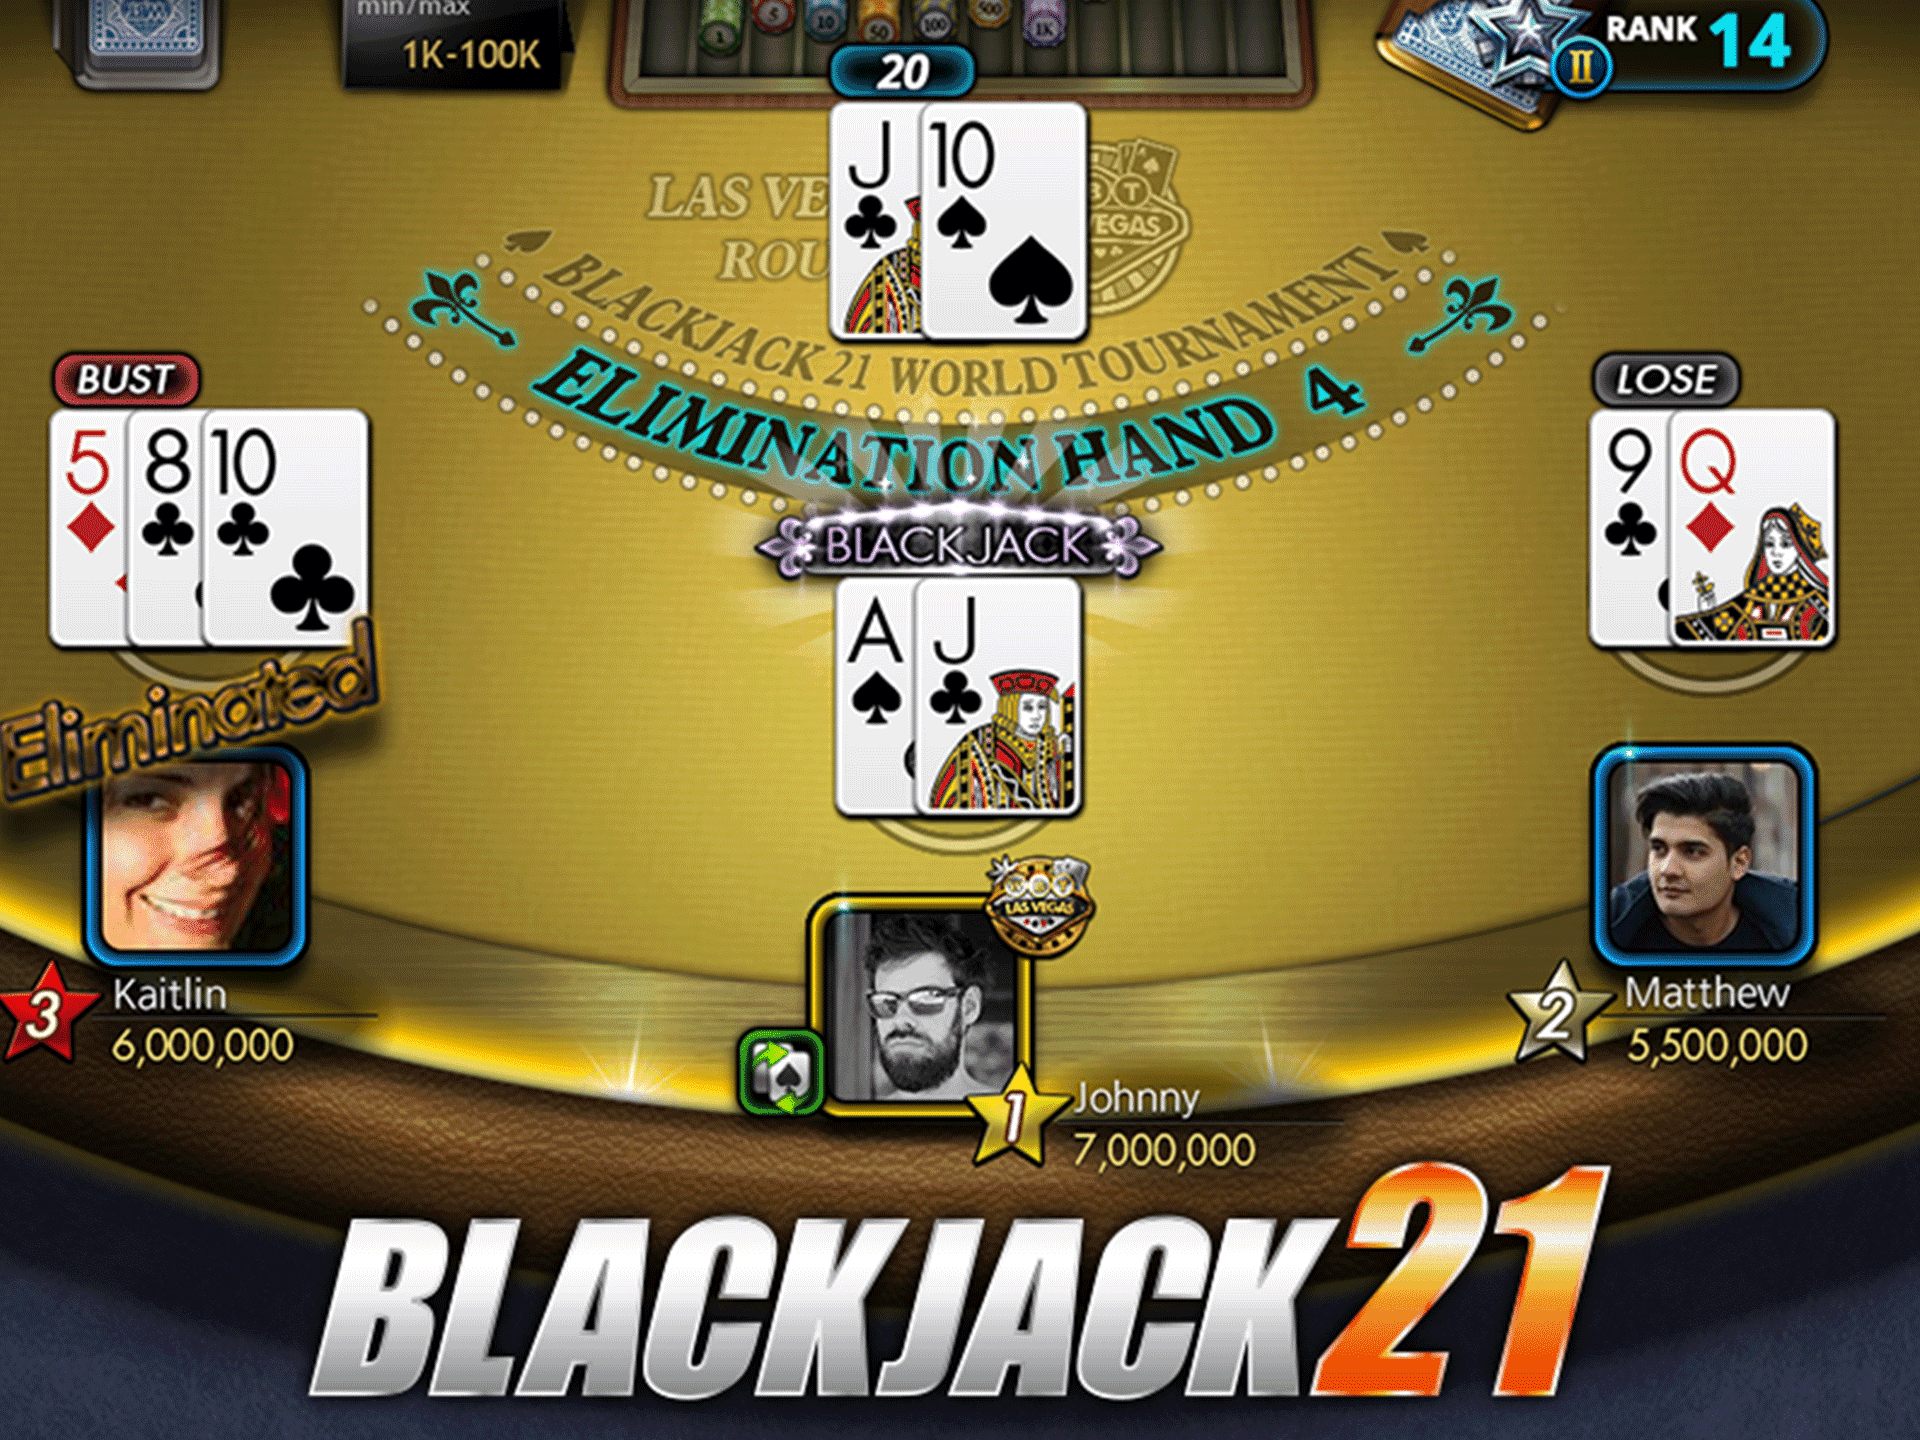 Blackjack 21 GALLERY IMAGE 3